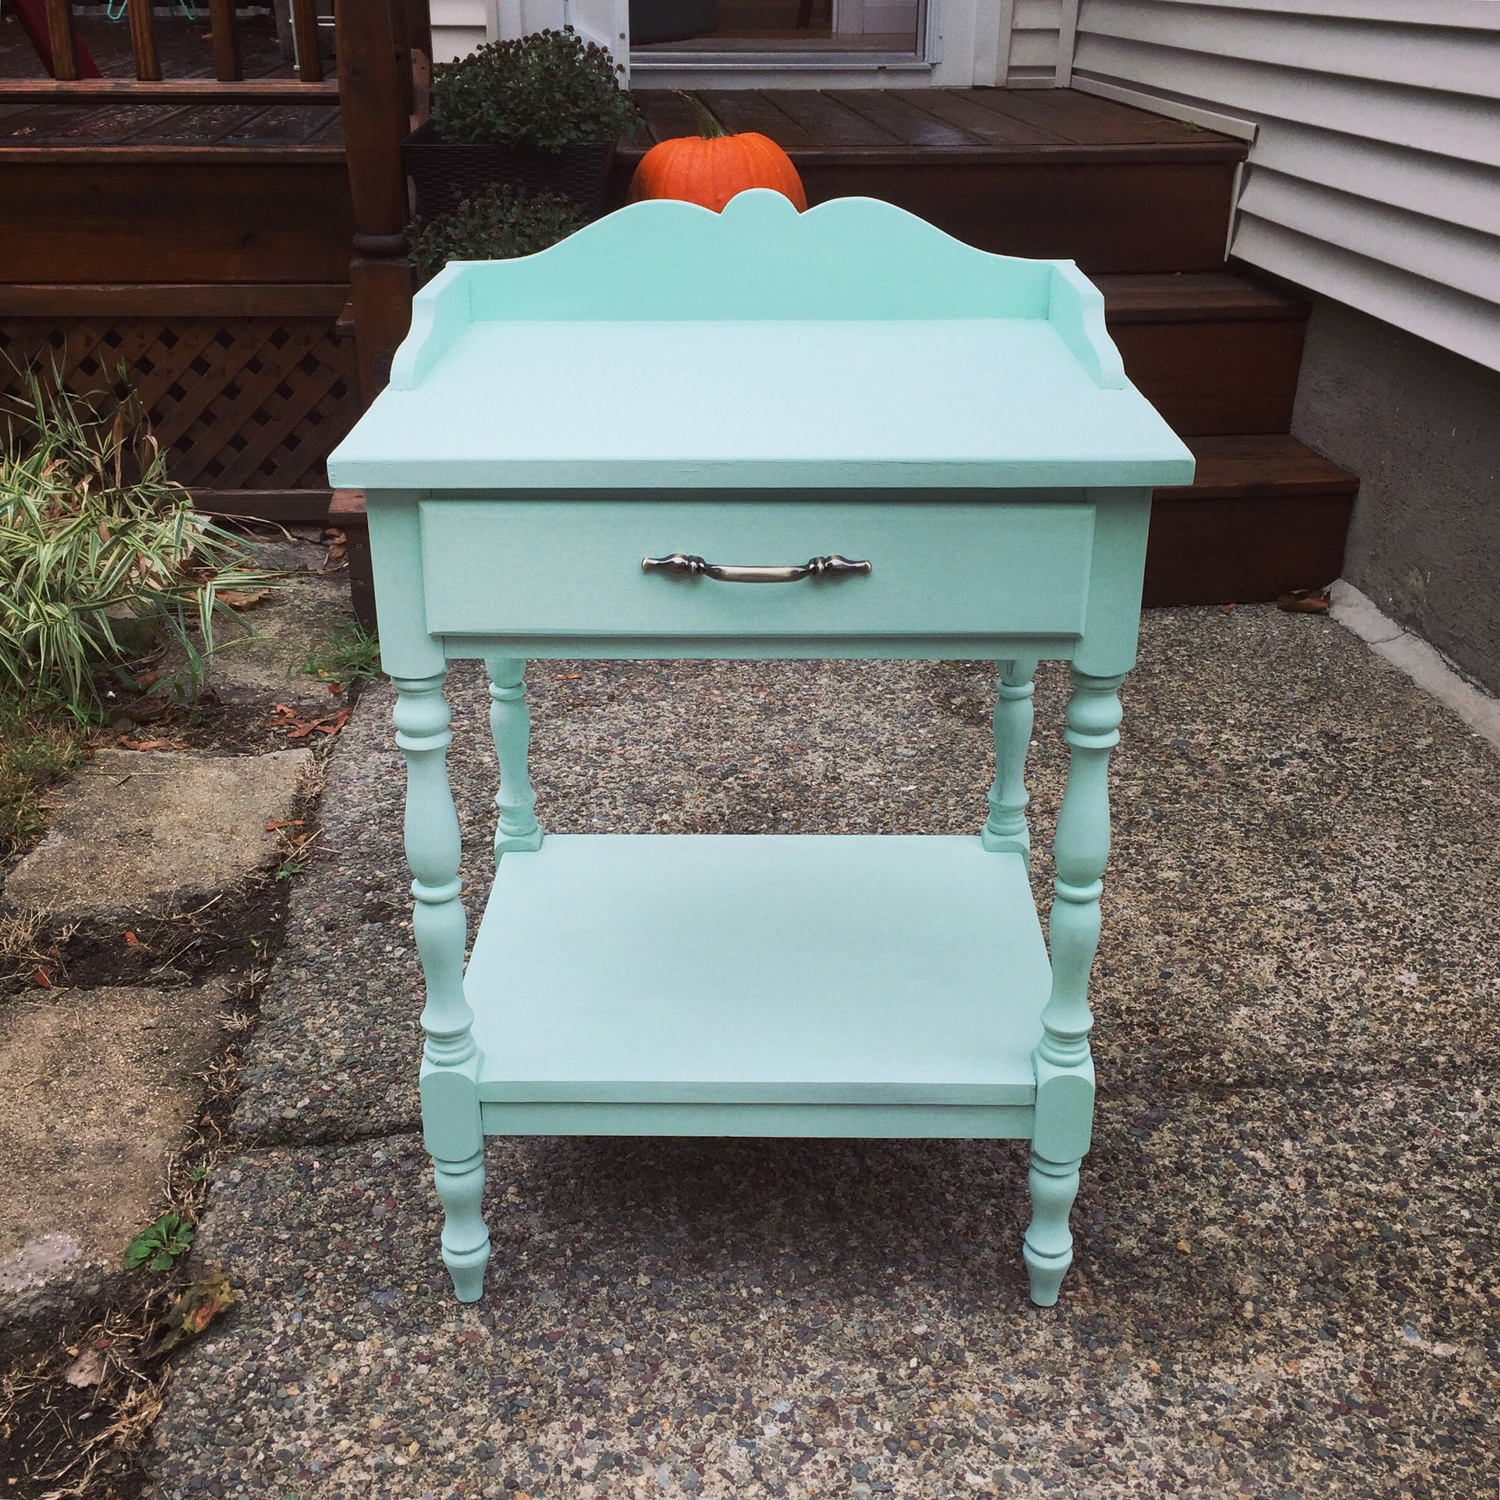 DIY Mint Painted End Table